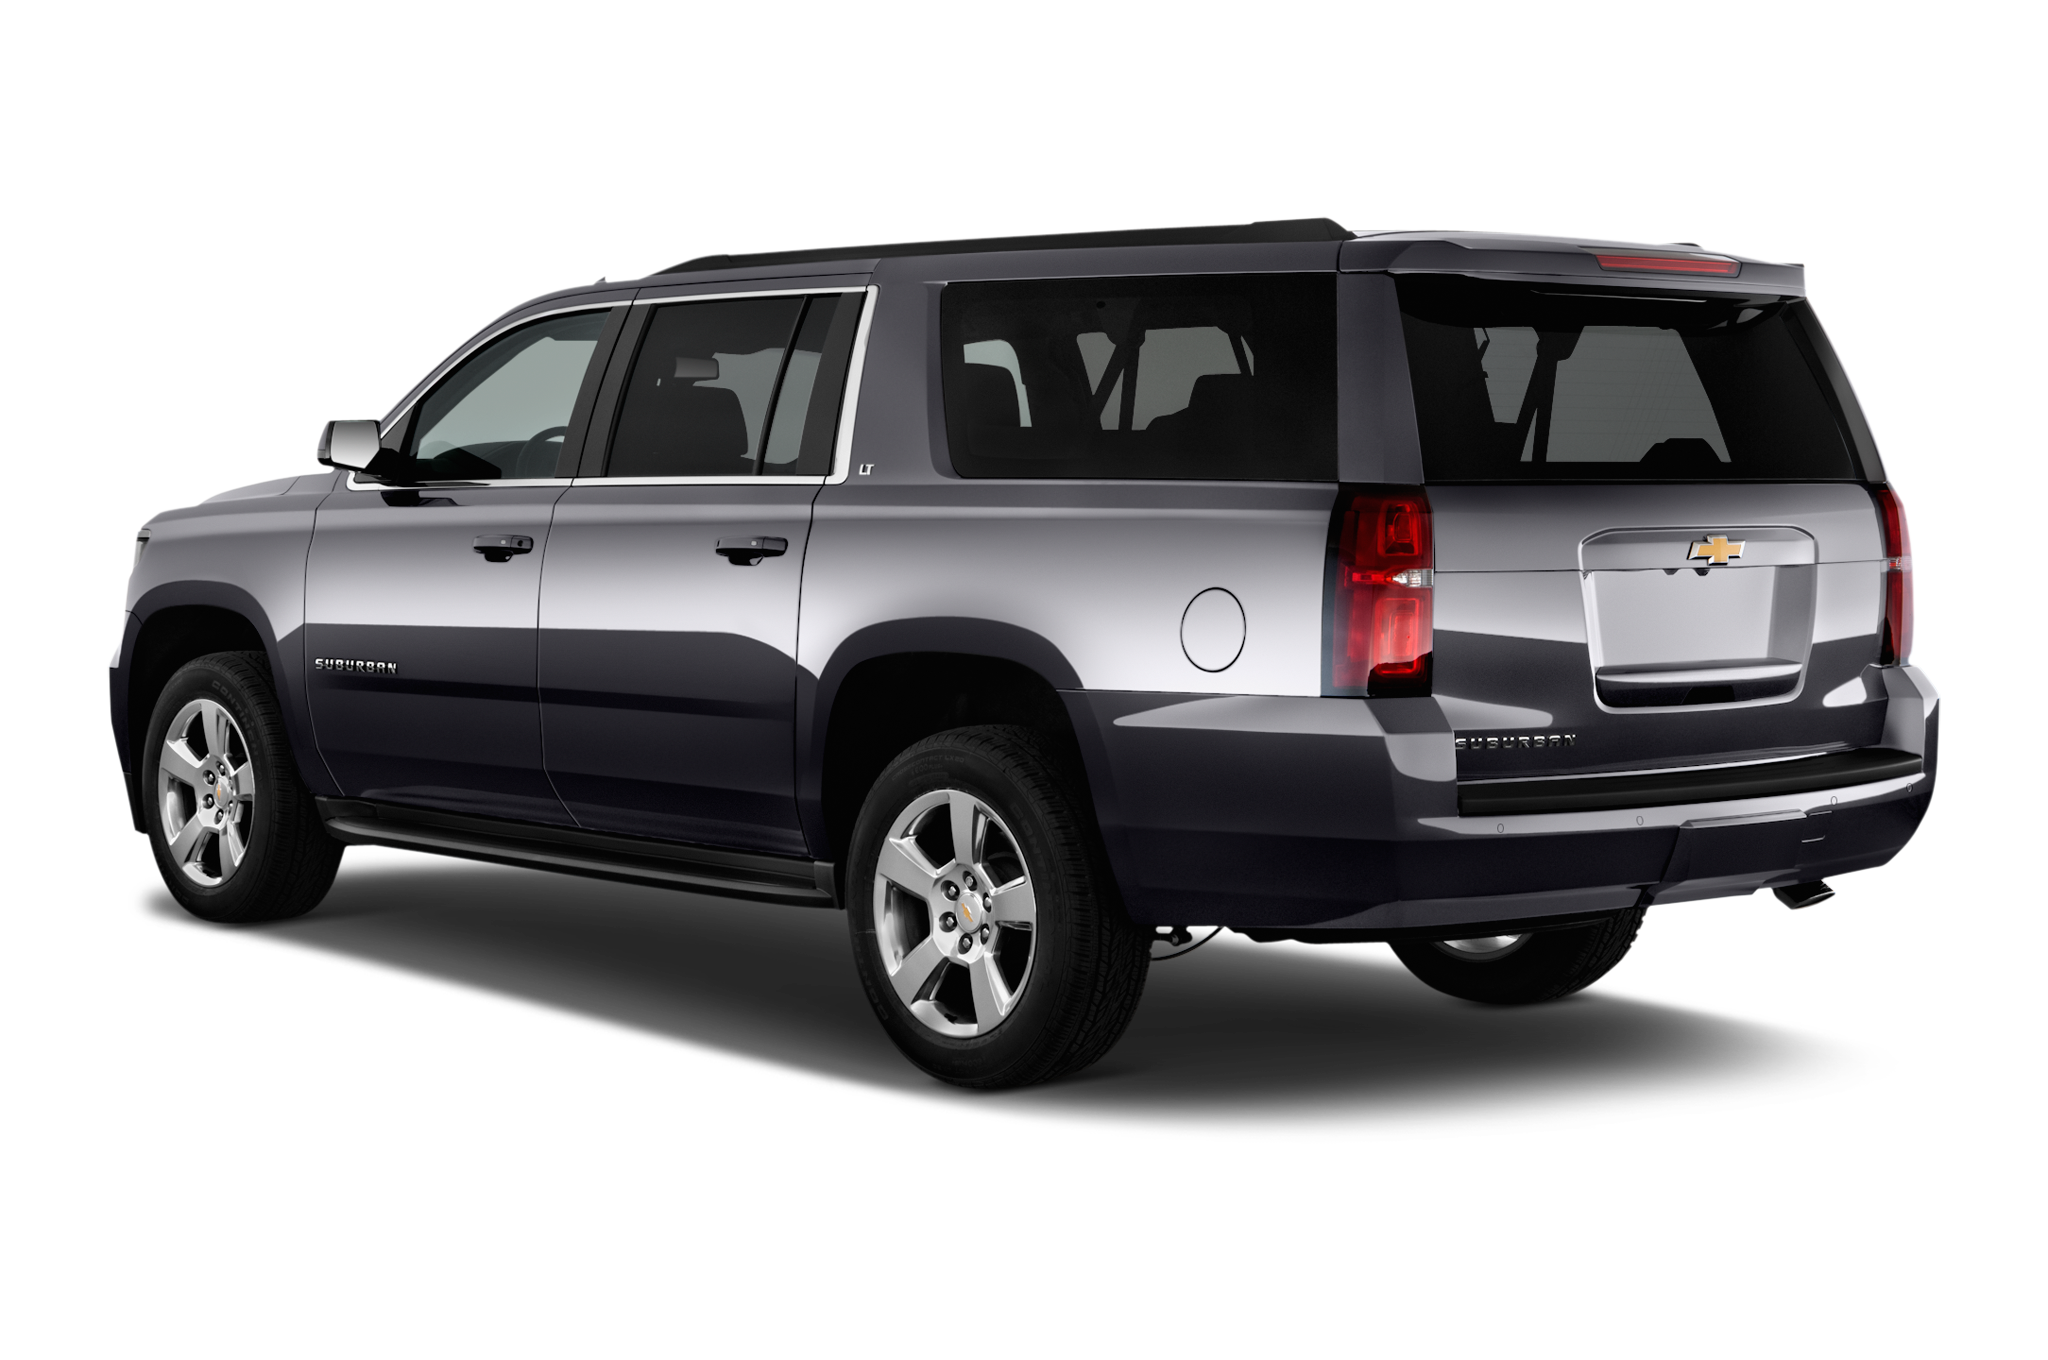 2015 chevrolet suburban 2wd 1500 lt suv angular rear. Cars Review. Best American Auto & Cars Review